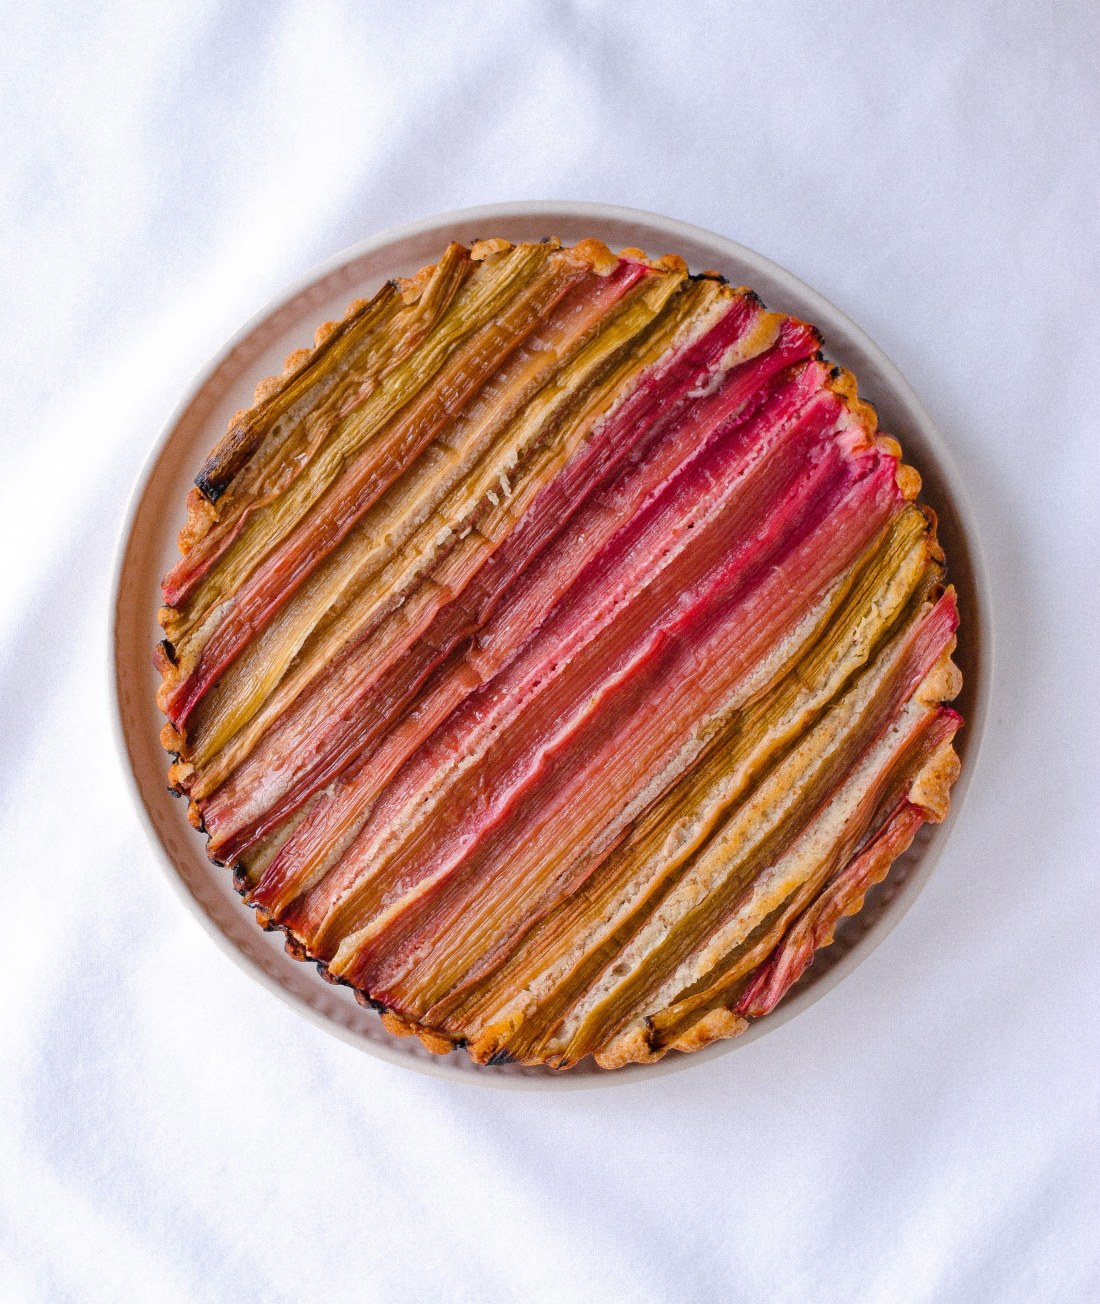 Rhubarb_Financier-2